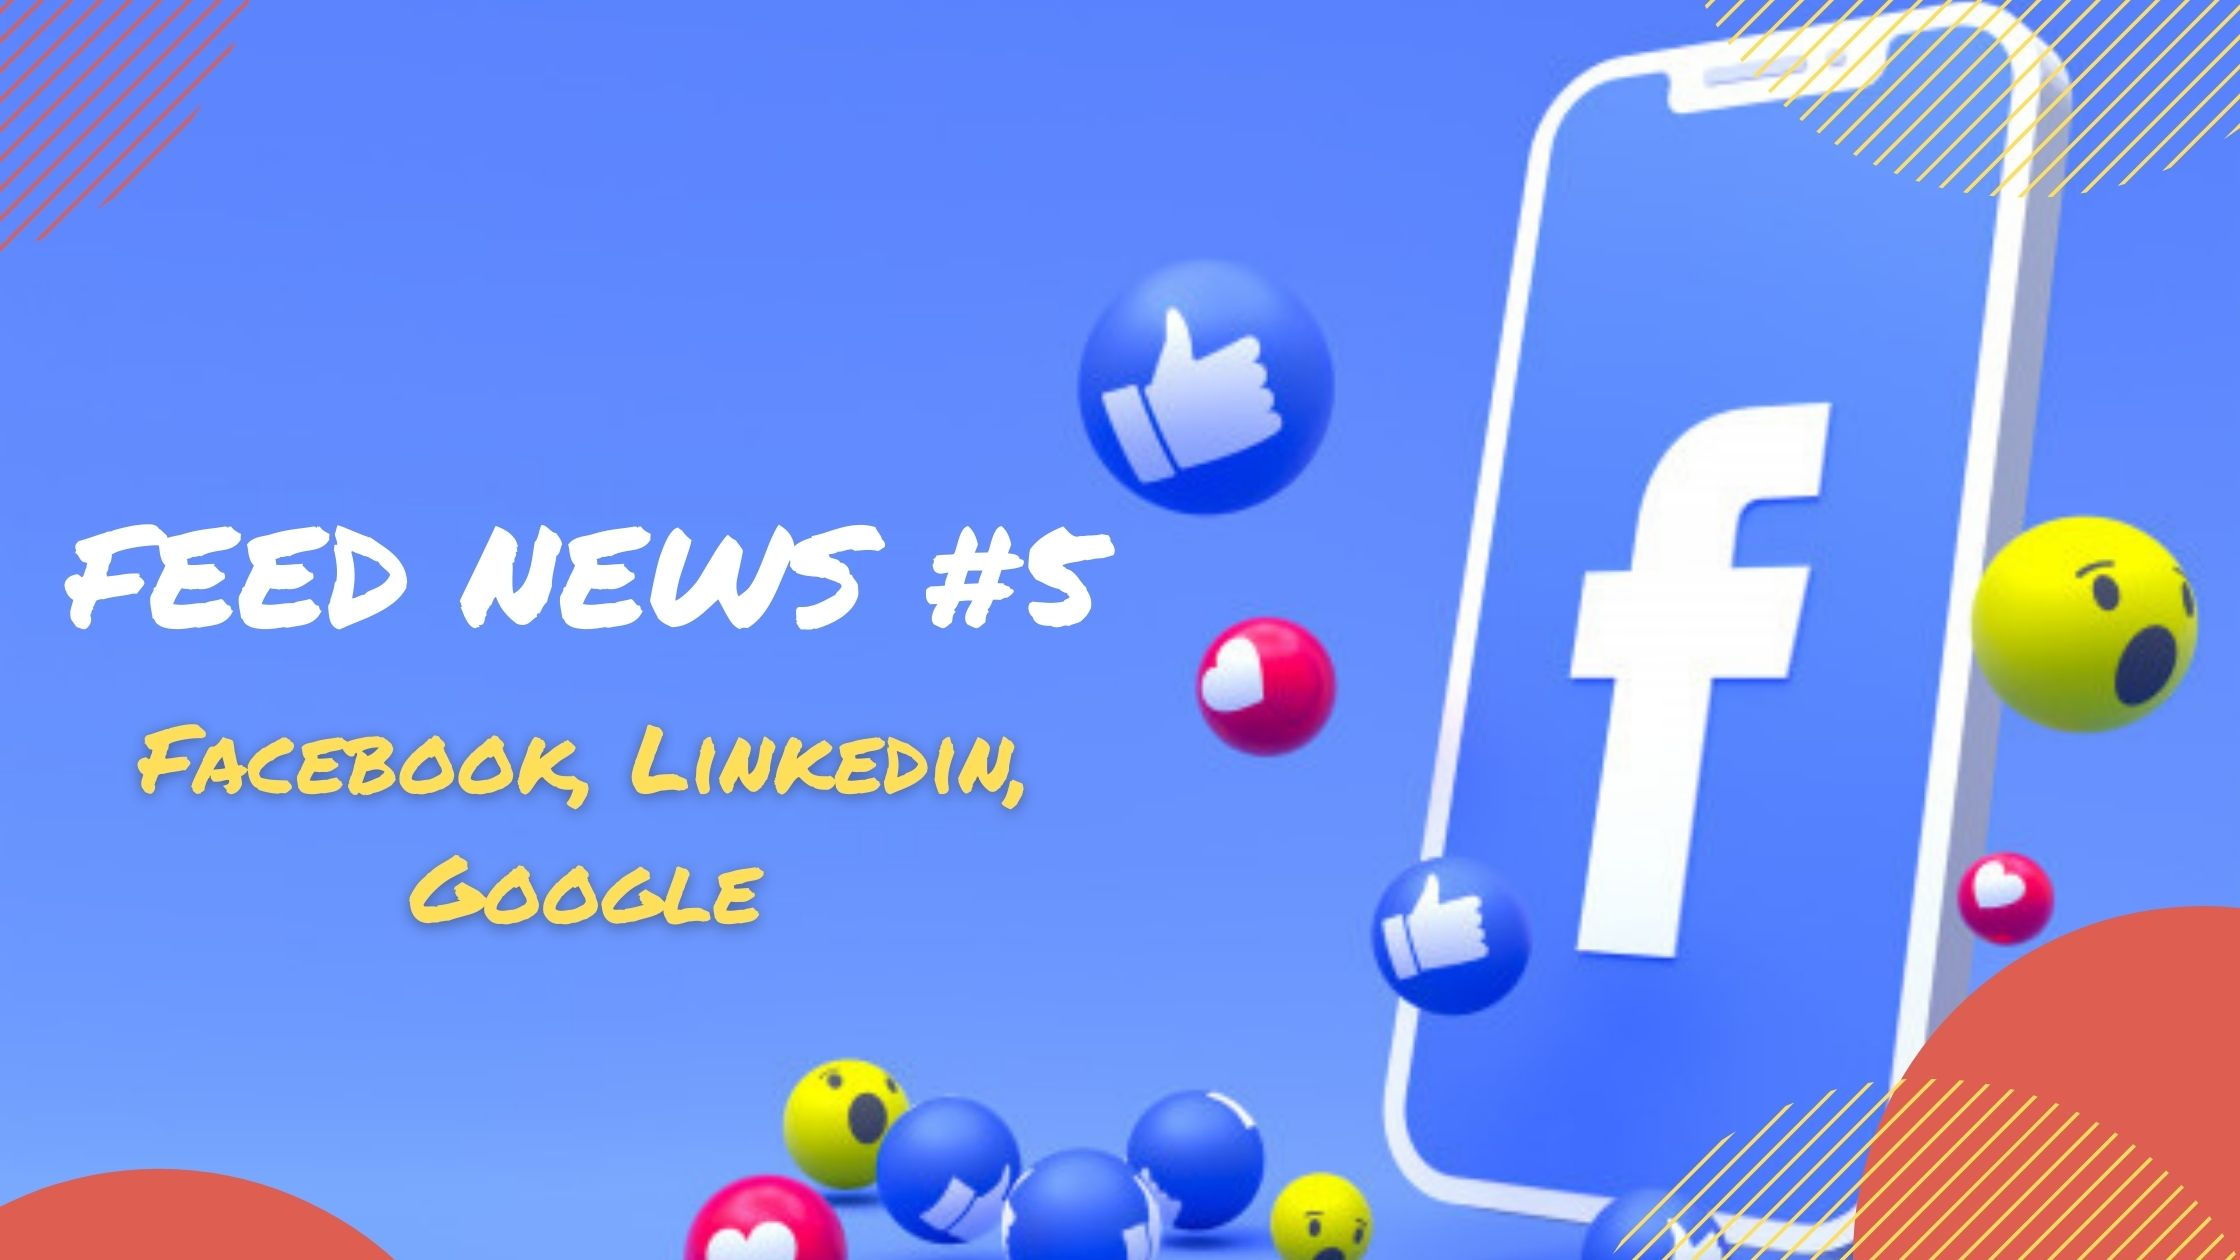 Feed News #5 Septembre : Facebook, Linkedin, Google